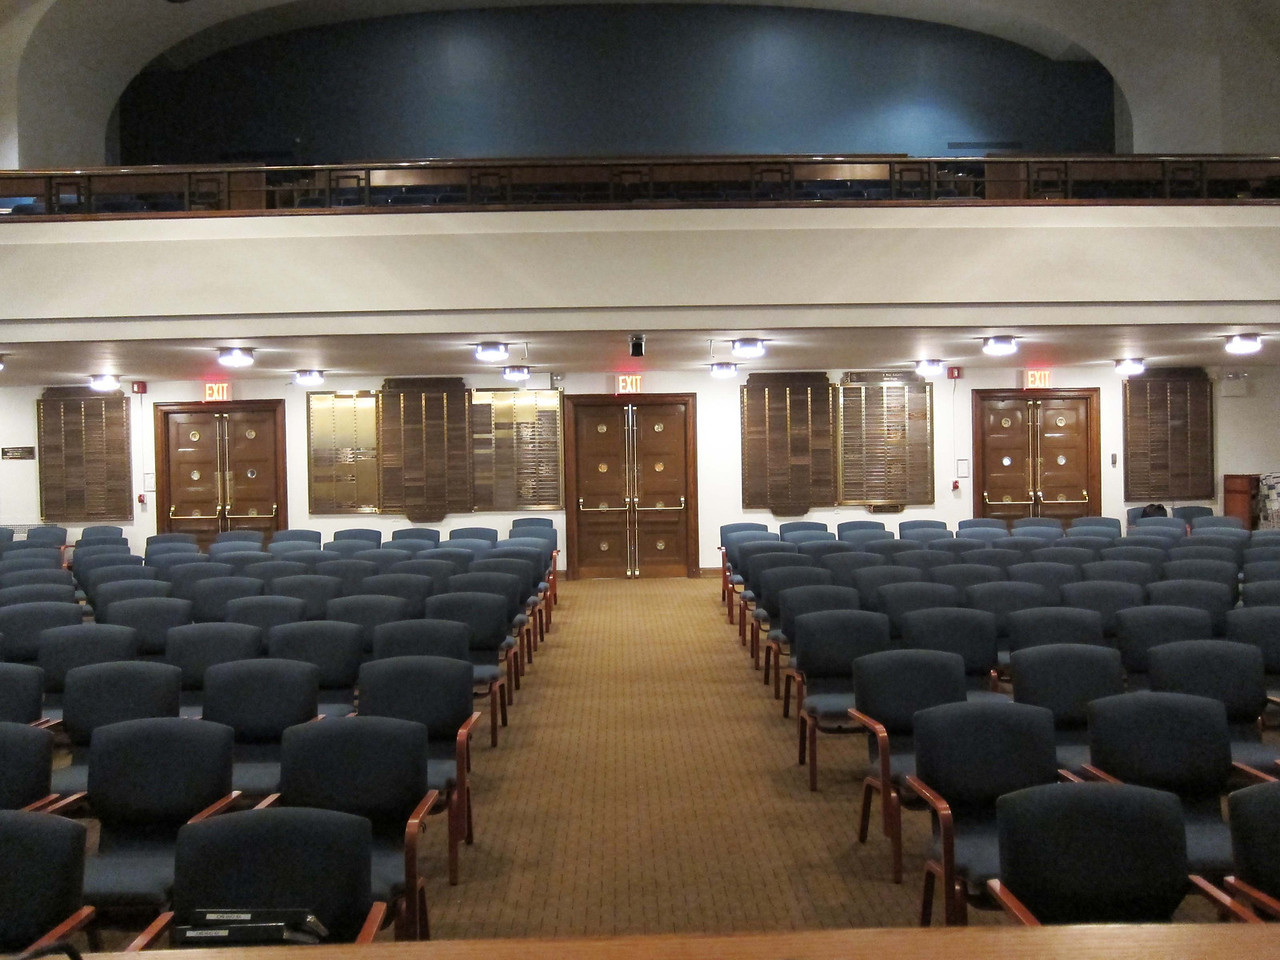 SWFS: The seating in the center shown here comprises 10 rows of chairs. The balcony is also available for seating and along with the main sanctuary and restrooms is handicap-accessible.